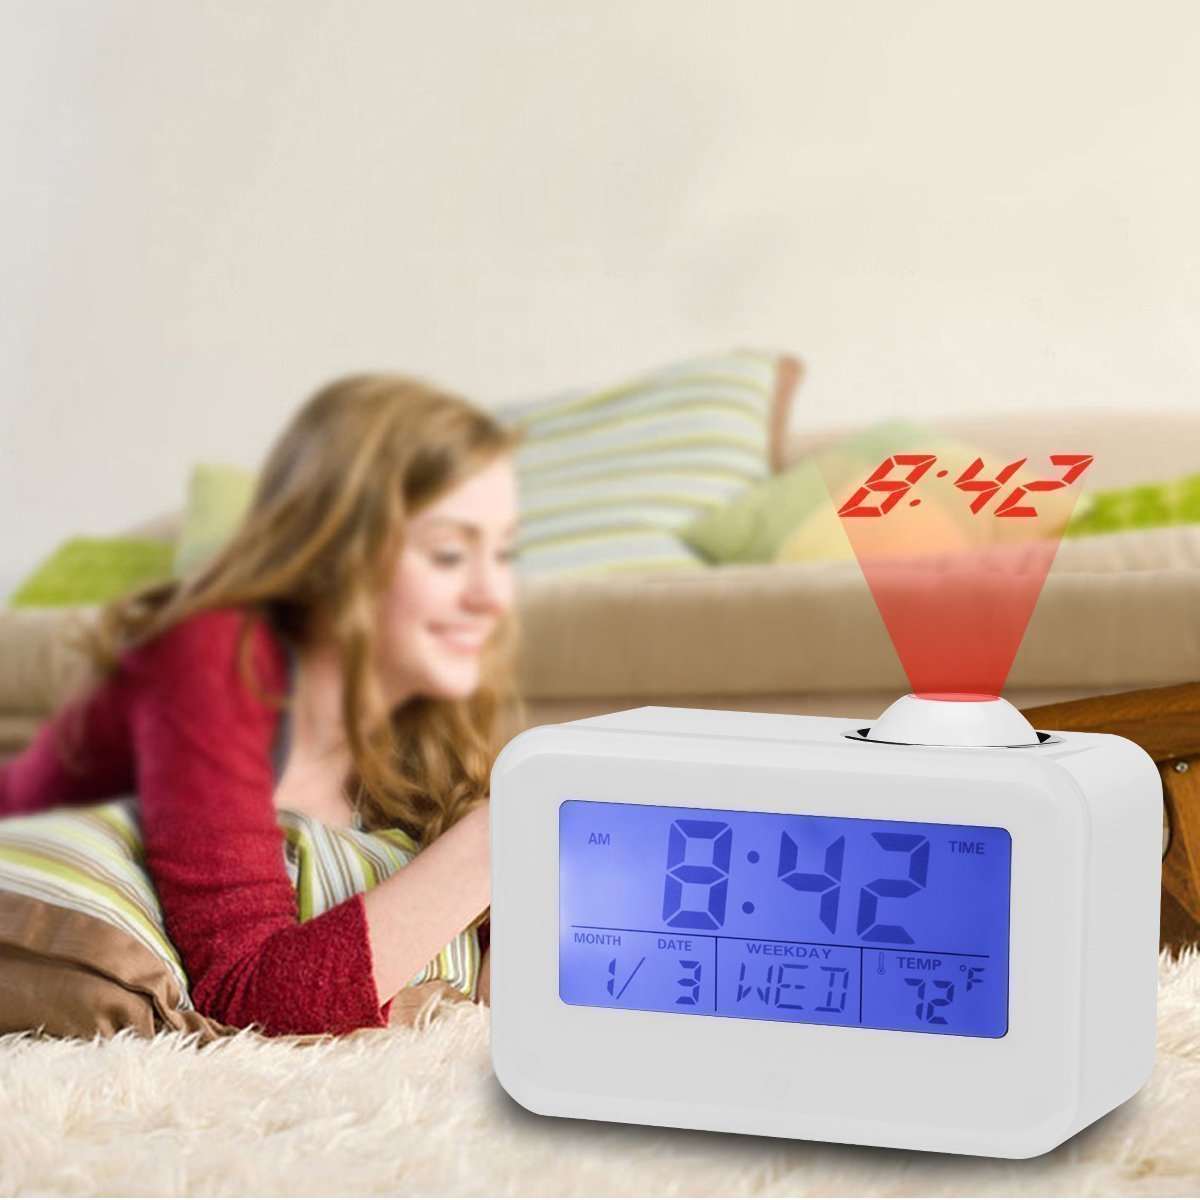 OFKPO Projection Digital Alarm Clock Voice Control with Night Light, Calendar, Temperature, Day, Dimmer, Sleep Timer, 12/24 Hour for Bedroom